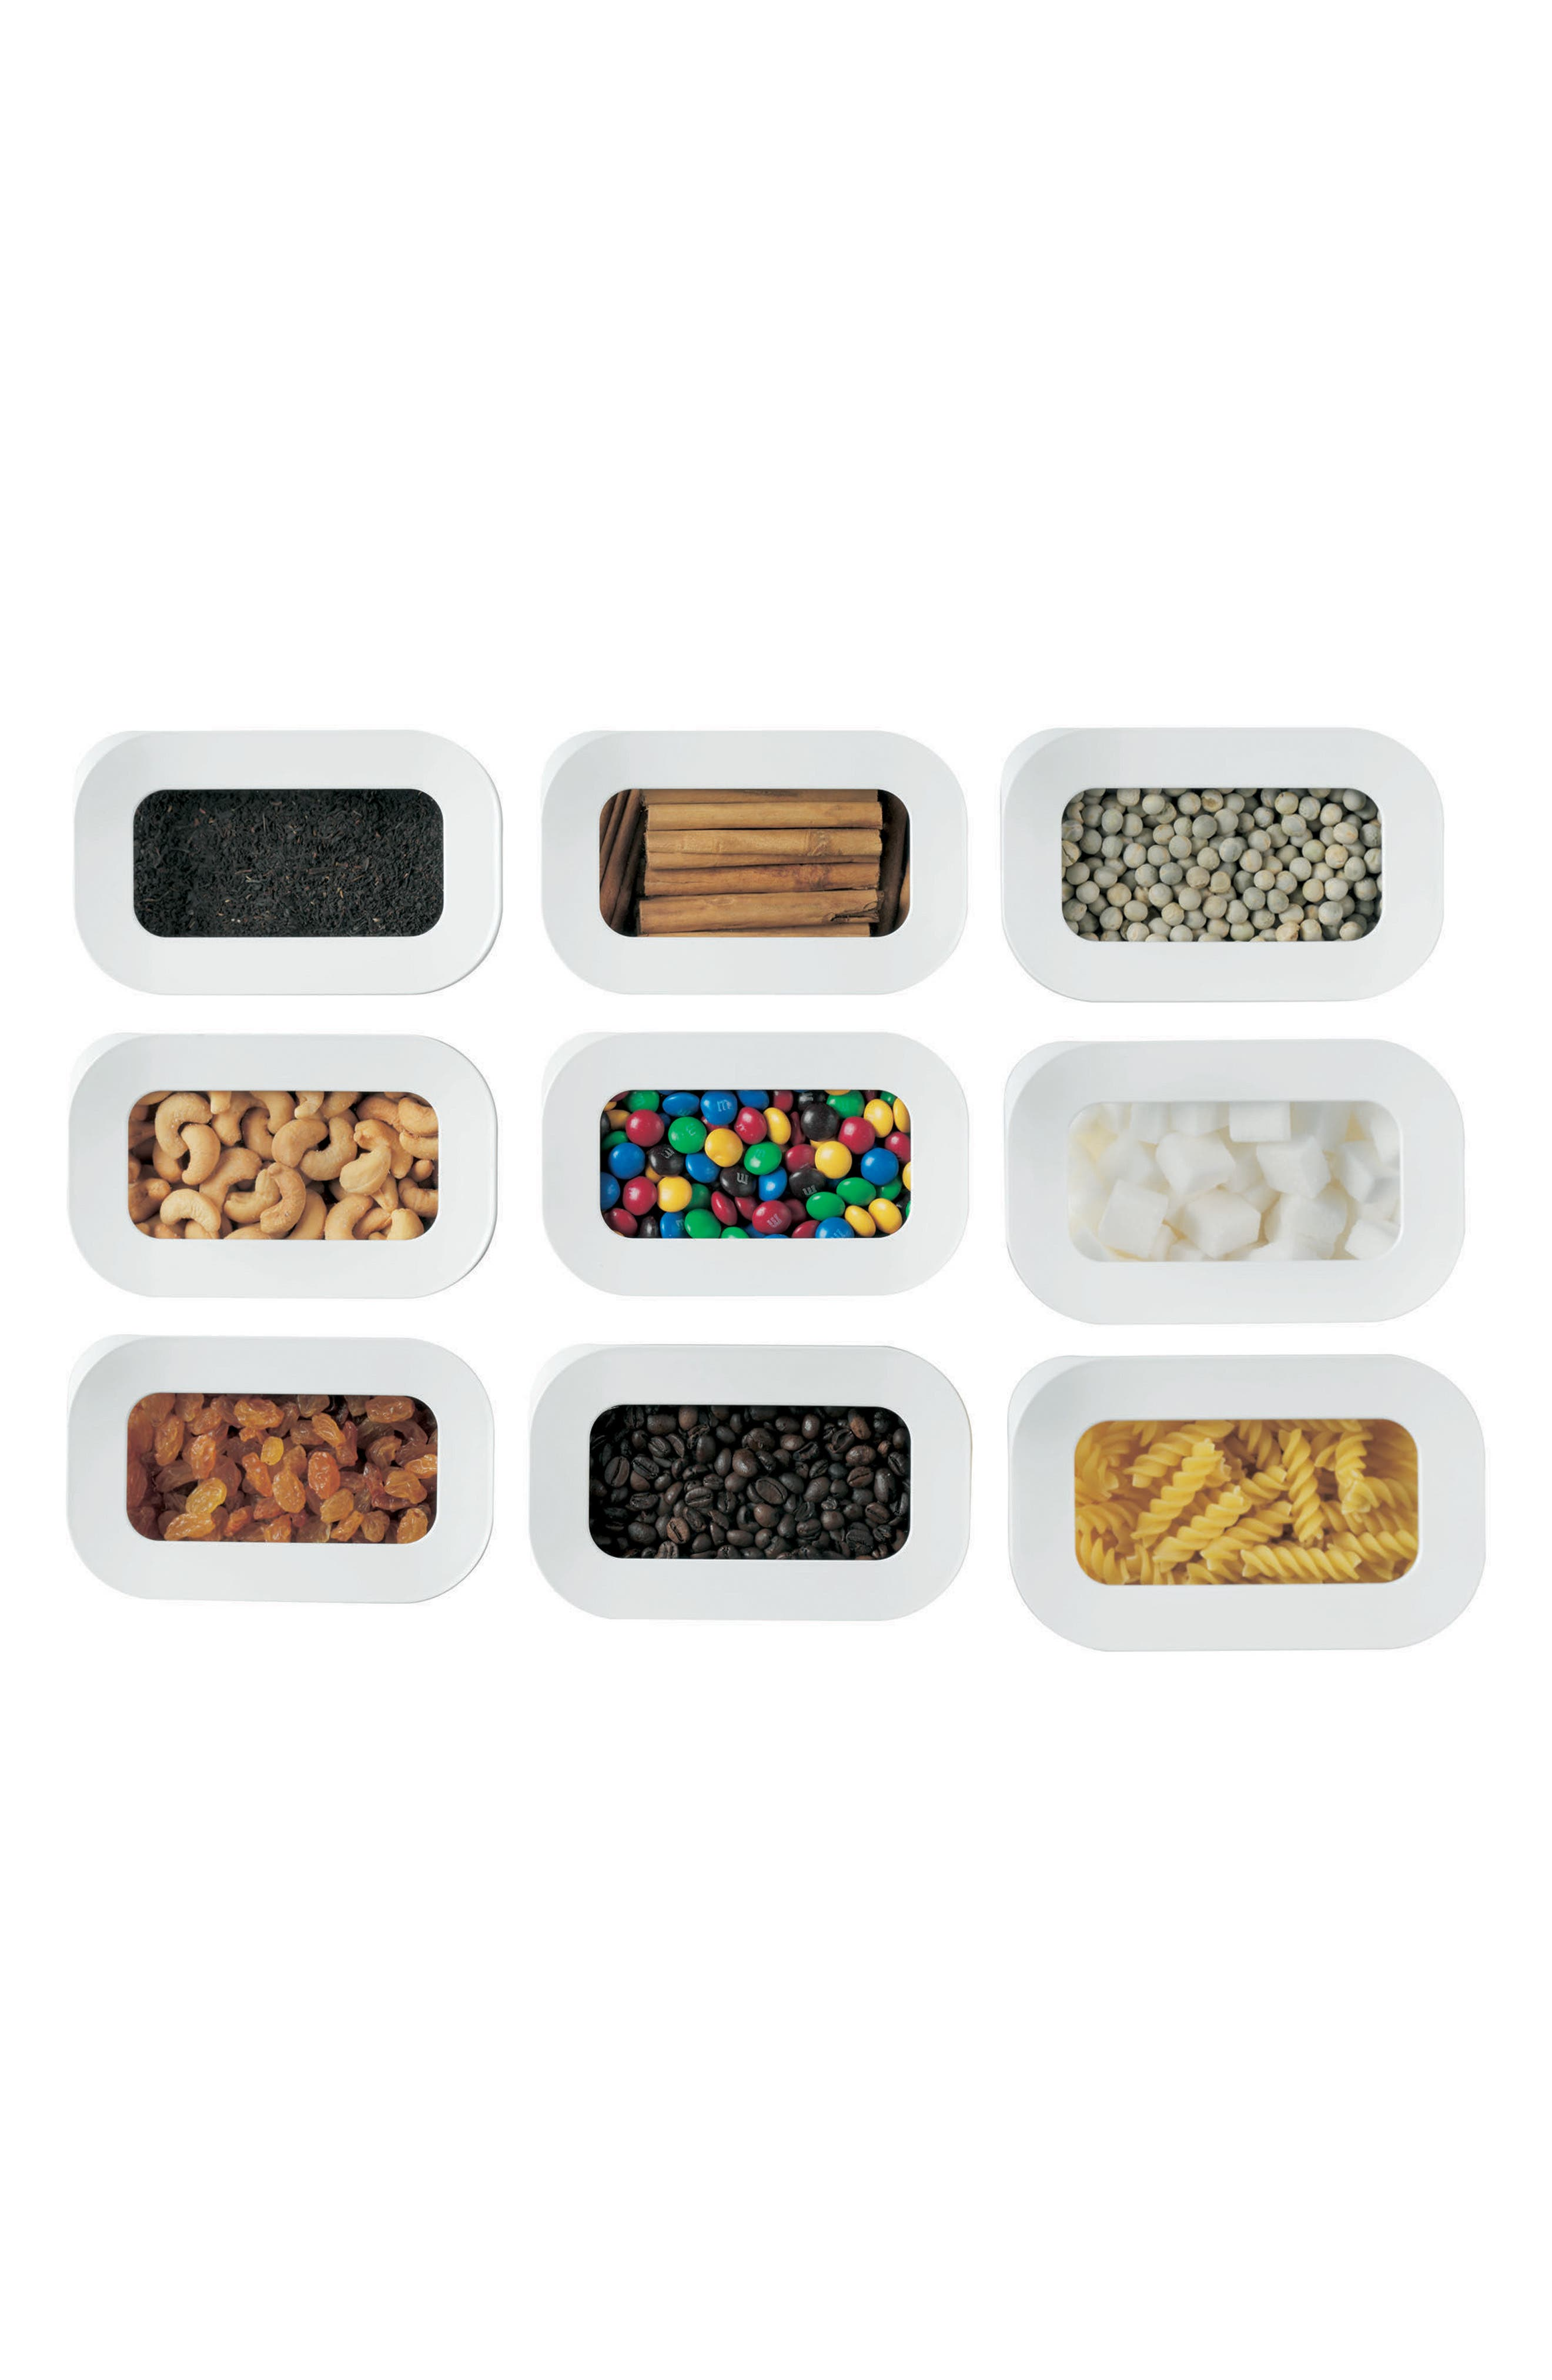 Alternate Image 3  - Rosti Mepal Modula 5-Piece Storage Box Starter Set